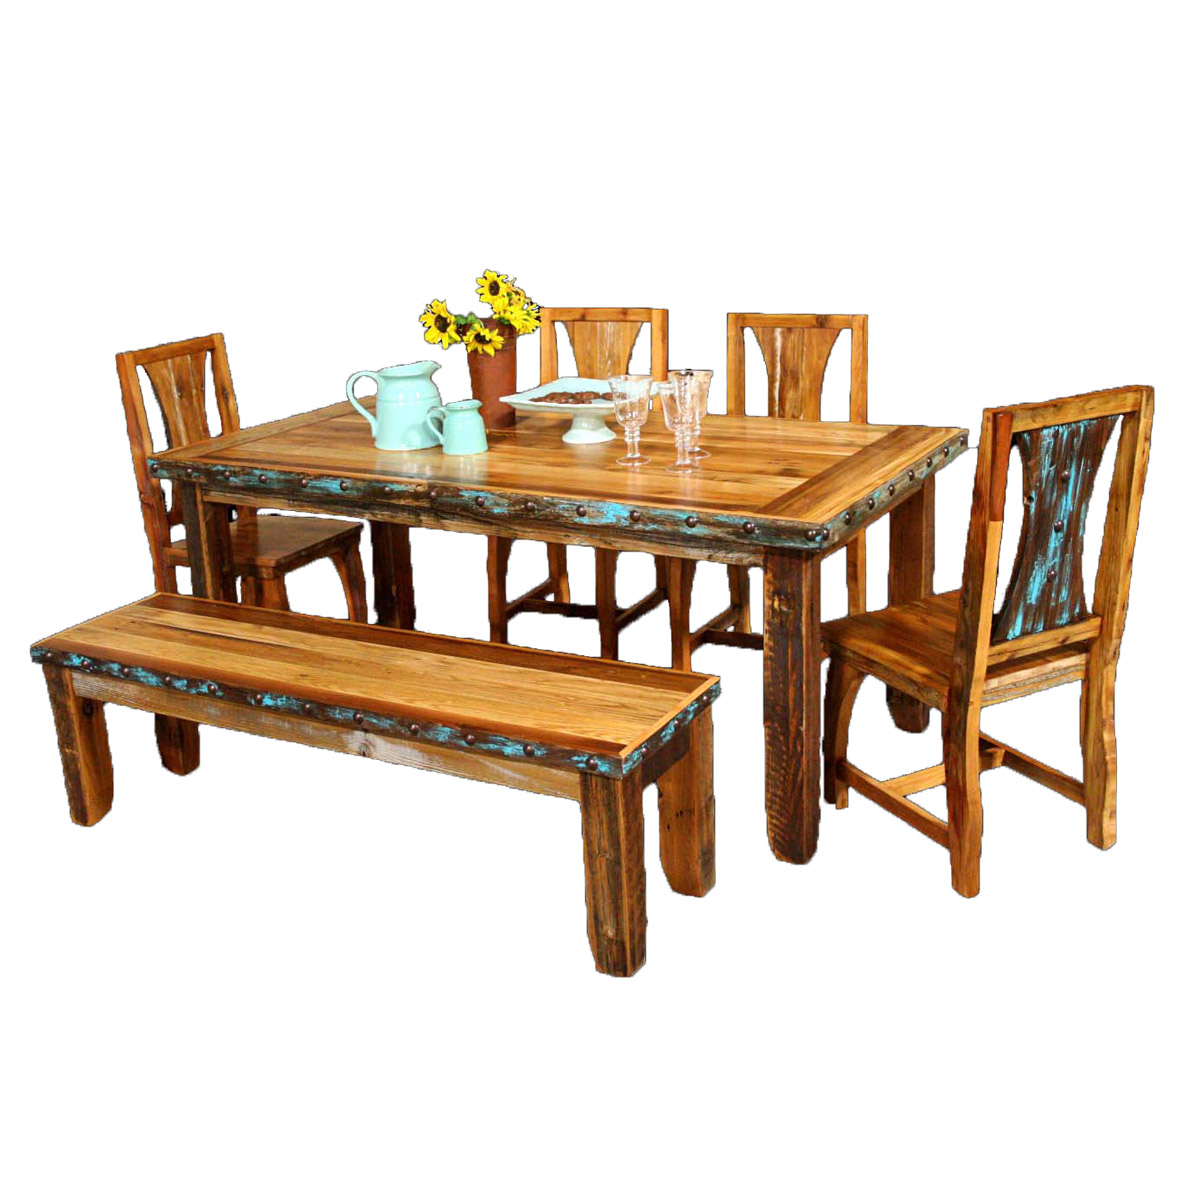 Barnwood Azul Table U0026 Western Chairs With Bench And Nailheads   6 Pcs    Southwestern Furniture